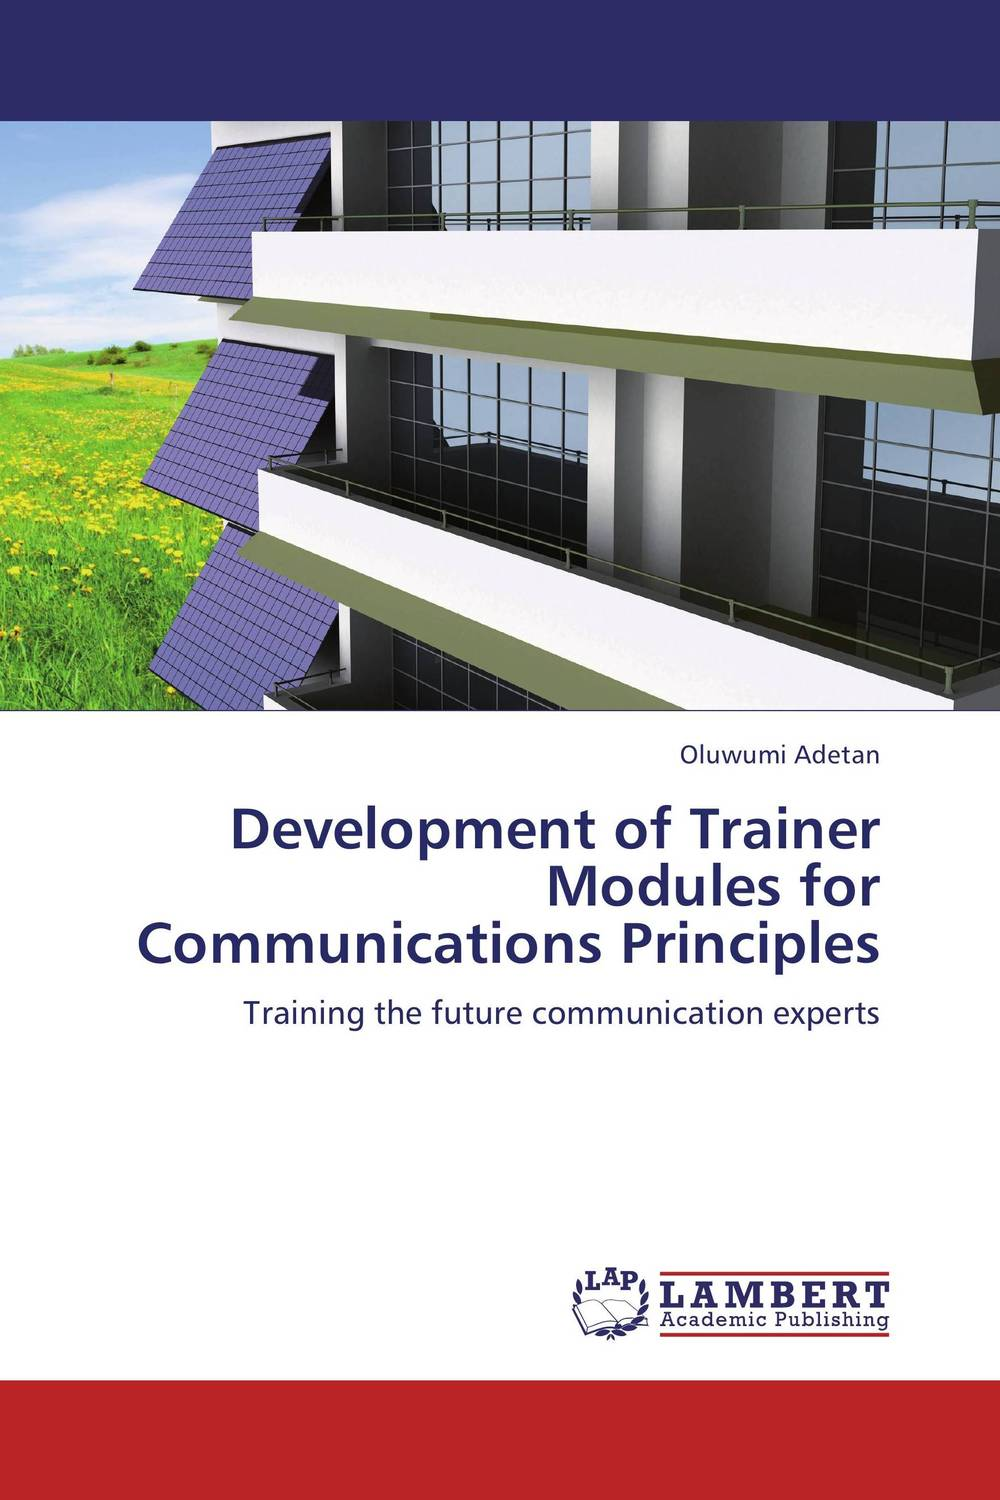 Development of Trainer Modules for Communications Principles principles of communications